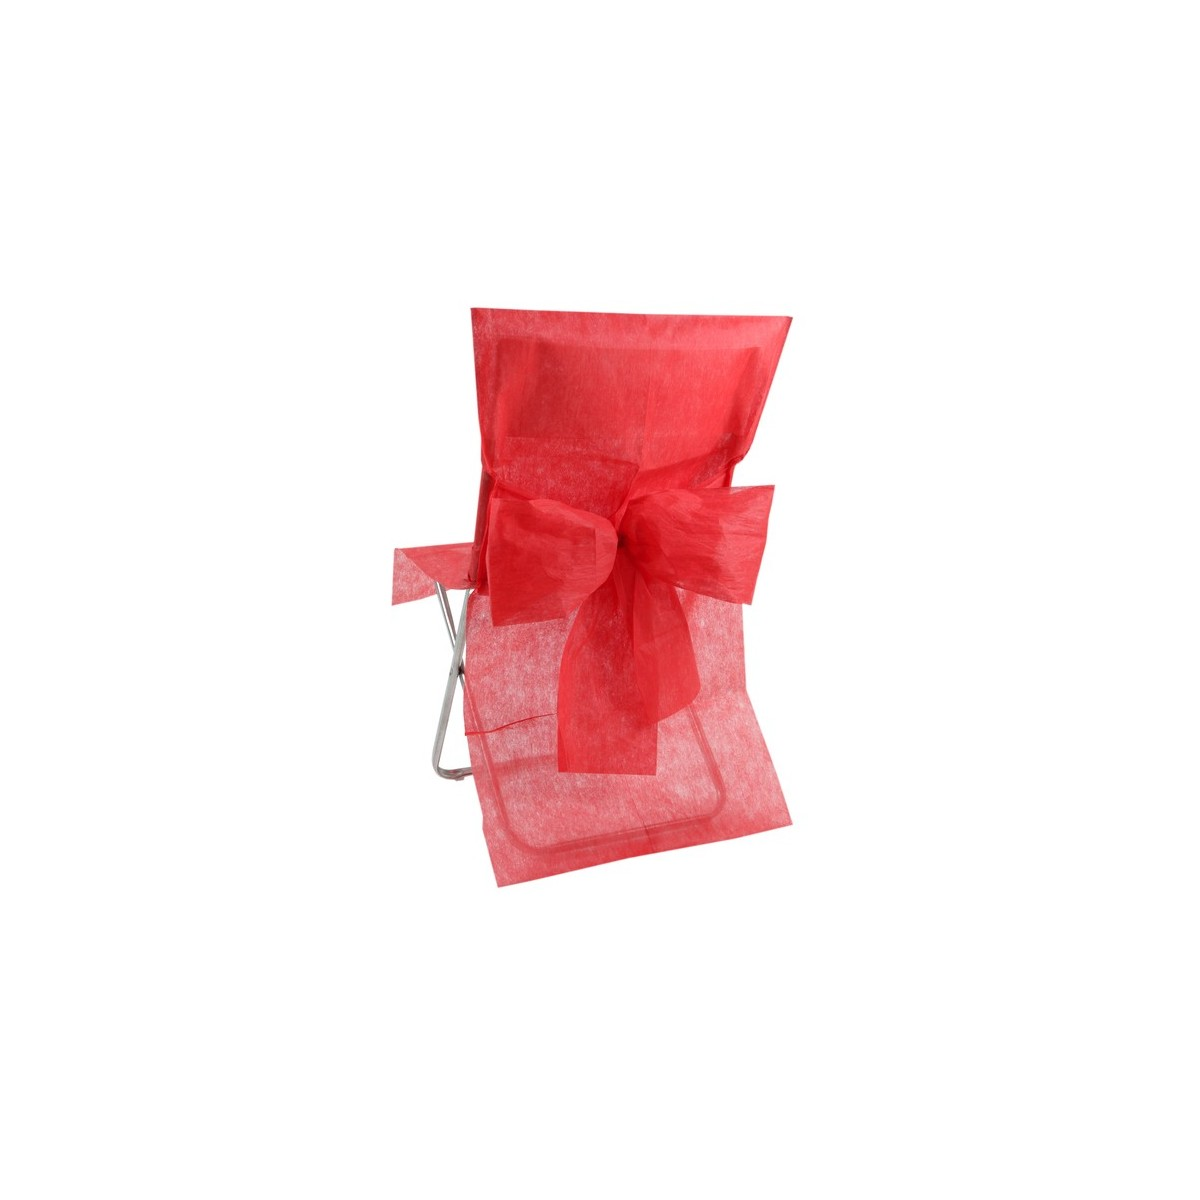 Chaises Rouges Fabulous Chaises Rouges With Chaises